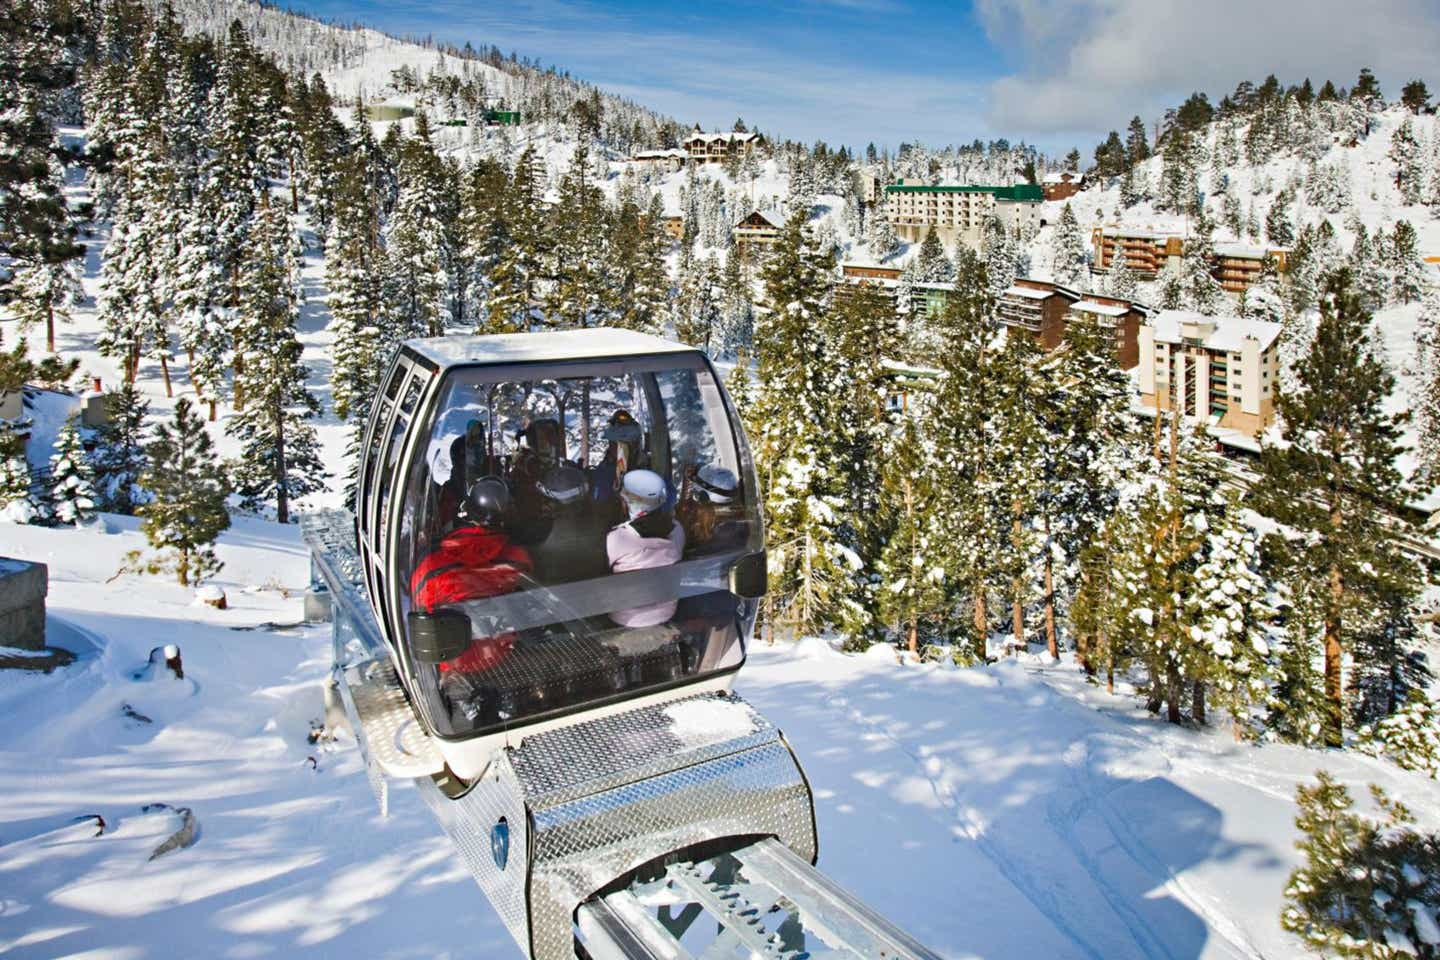 Skier Express at Tahoe Ridge Resort. Photo courtesy of IHG®